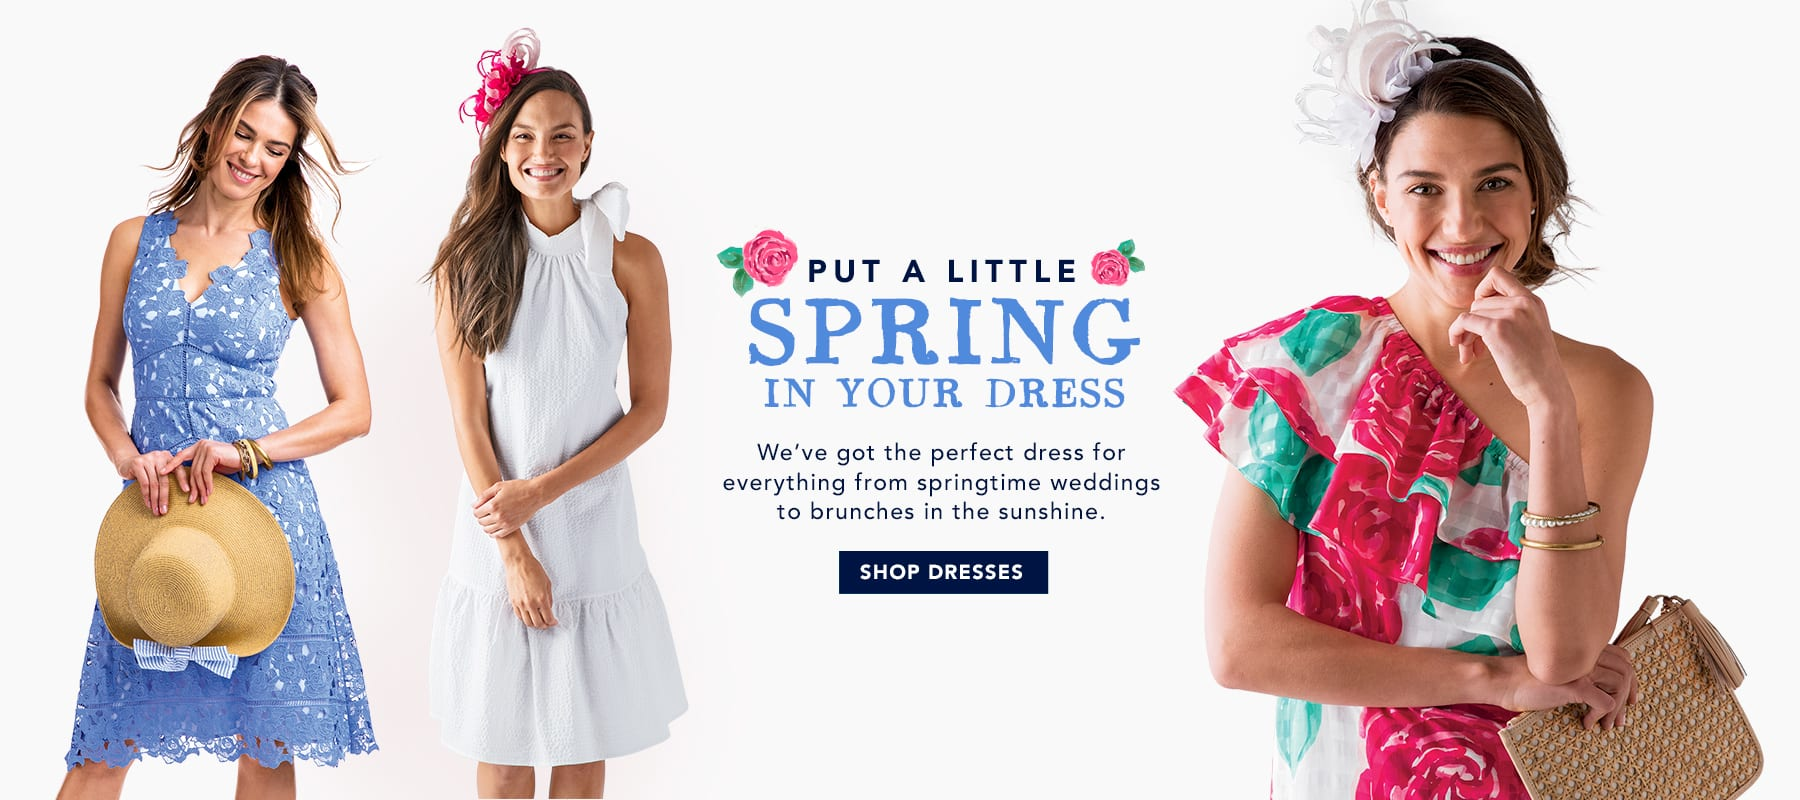 Put a little spring in your dress. We've got the perfect dess for everything from springtime weddings to brunches in the sunshine. Shop womens dresses.